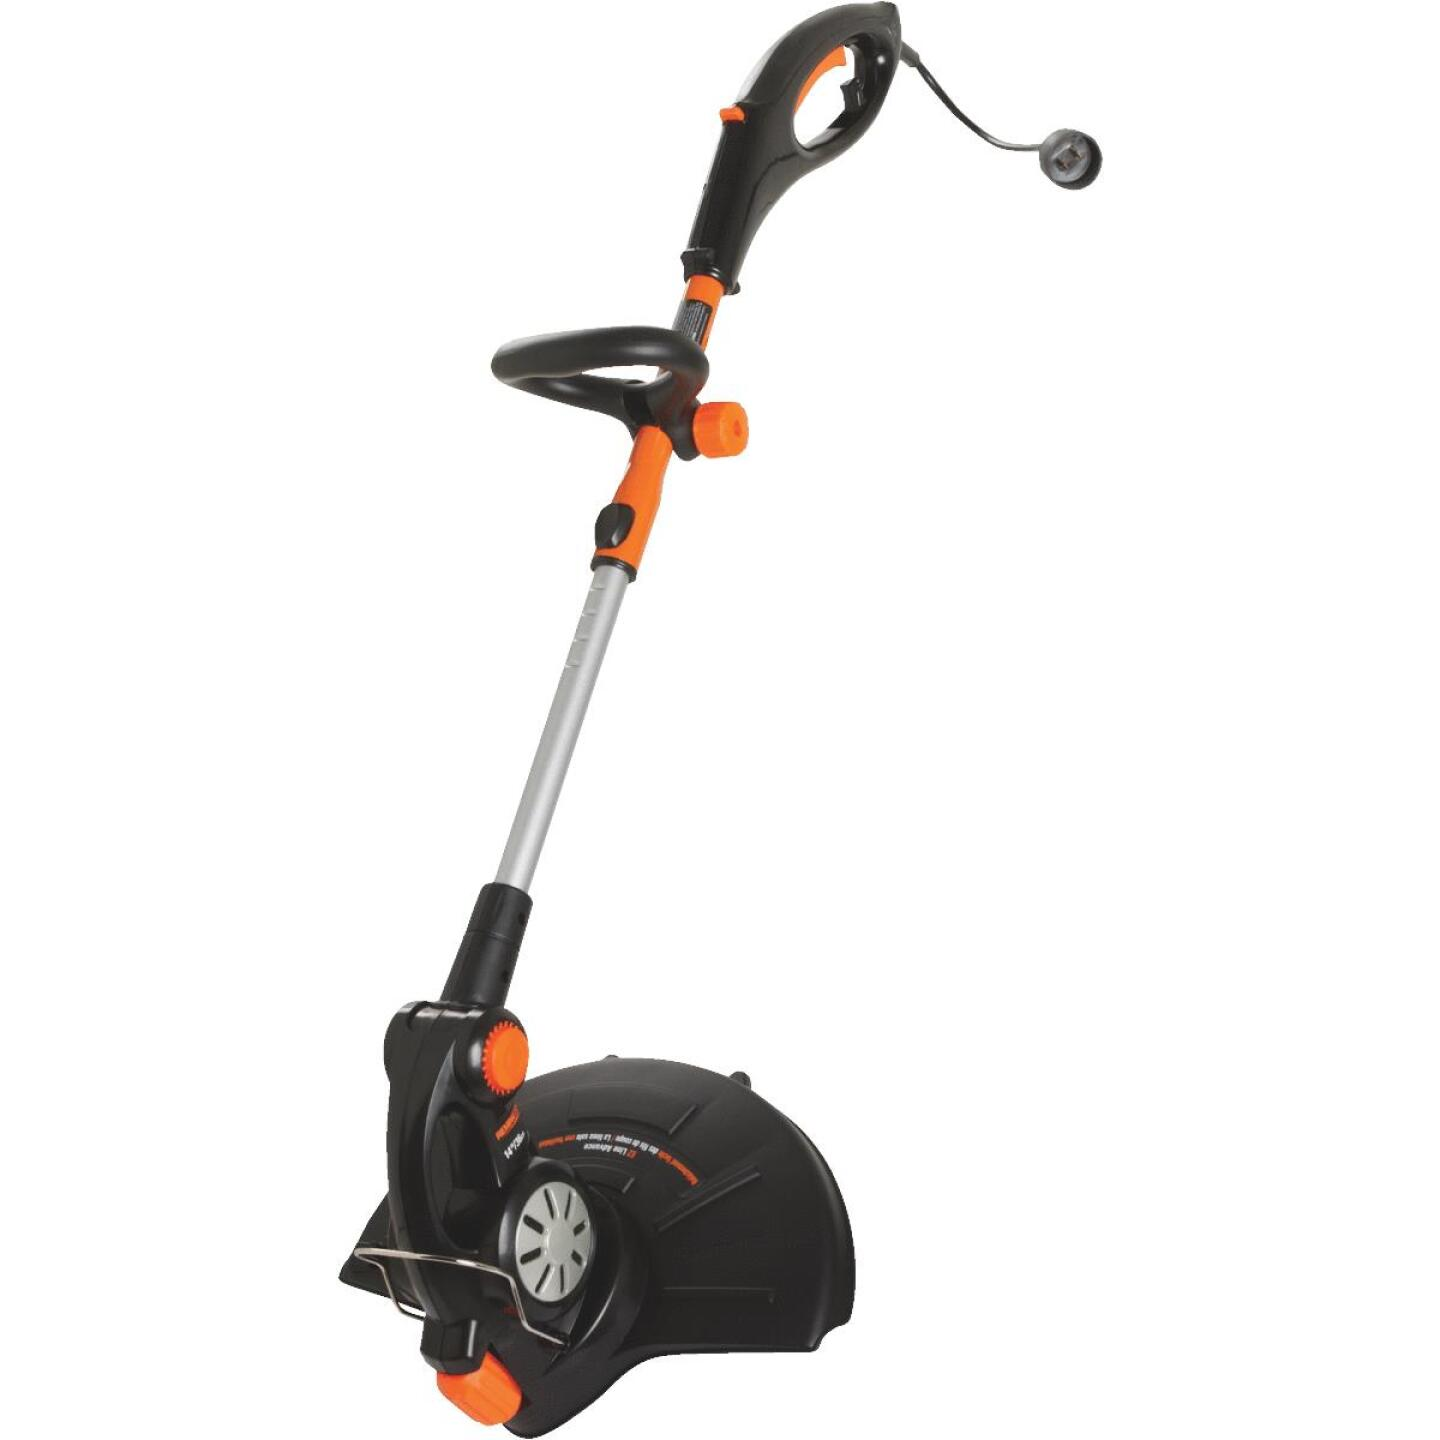 Remington RM115ST 14 In. 5.5-Amp Straight Shaft Corded Electric String Trimmer/Edger Image 2